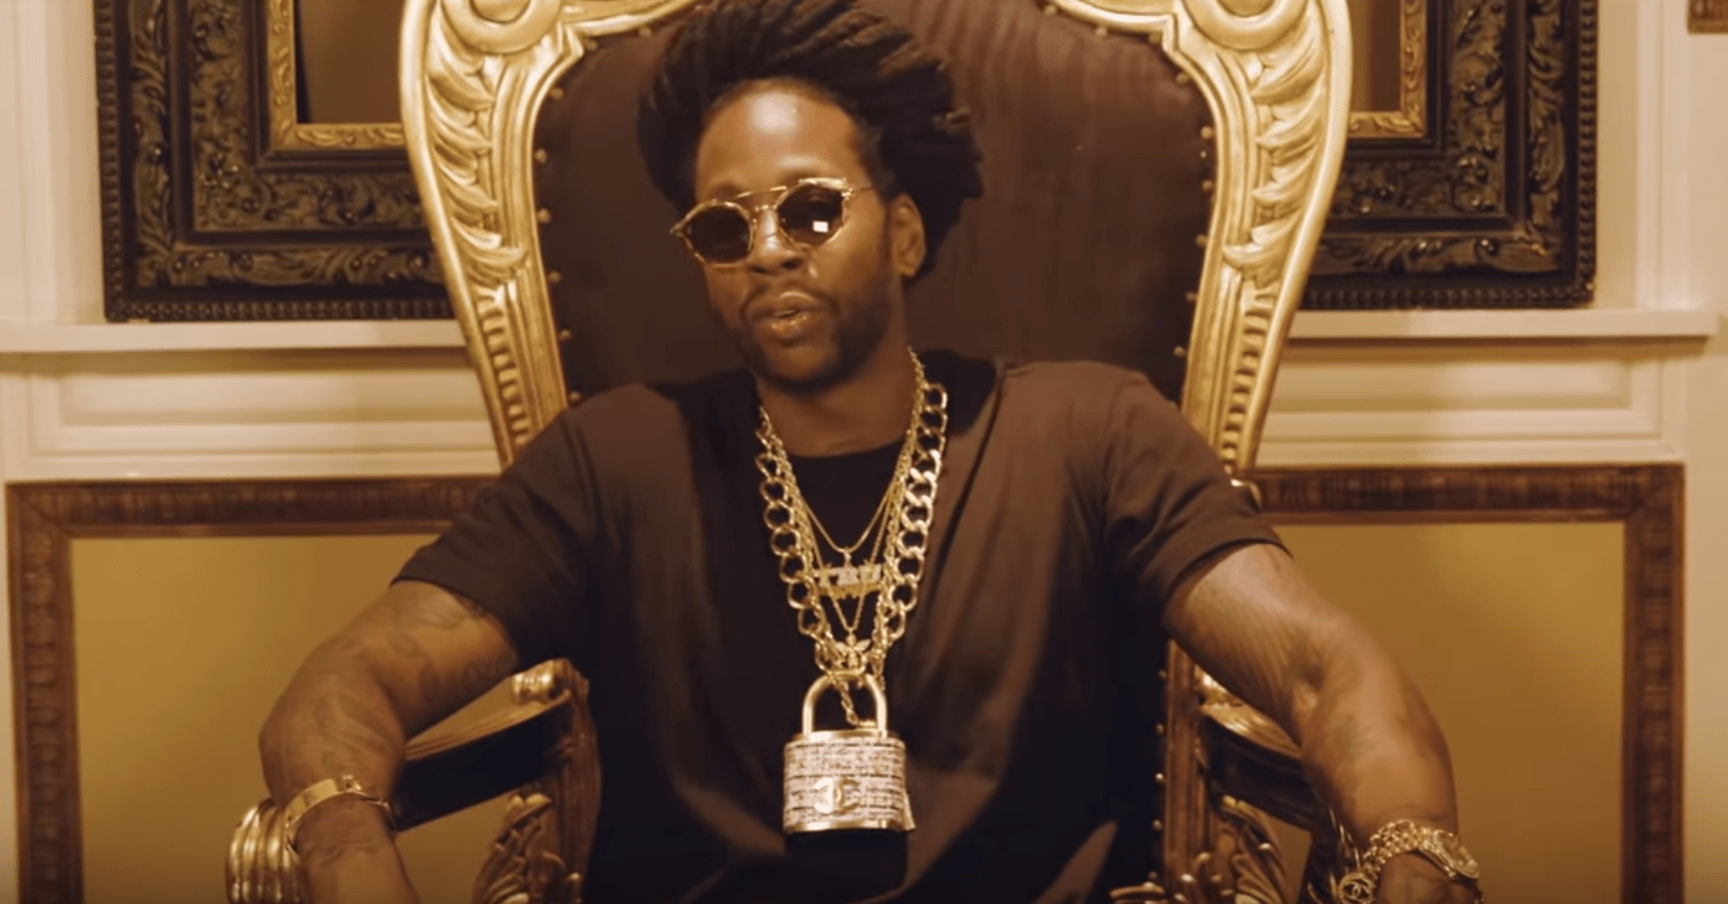 """King Von & NLE Choppa """"Last Message,"""" Young Dolph ft. Key Glock """"No Sense"""" & More New Music Videos"""